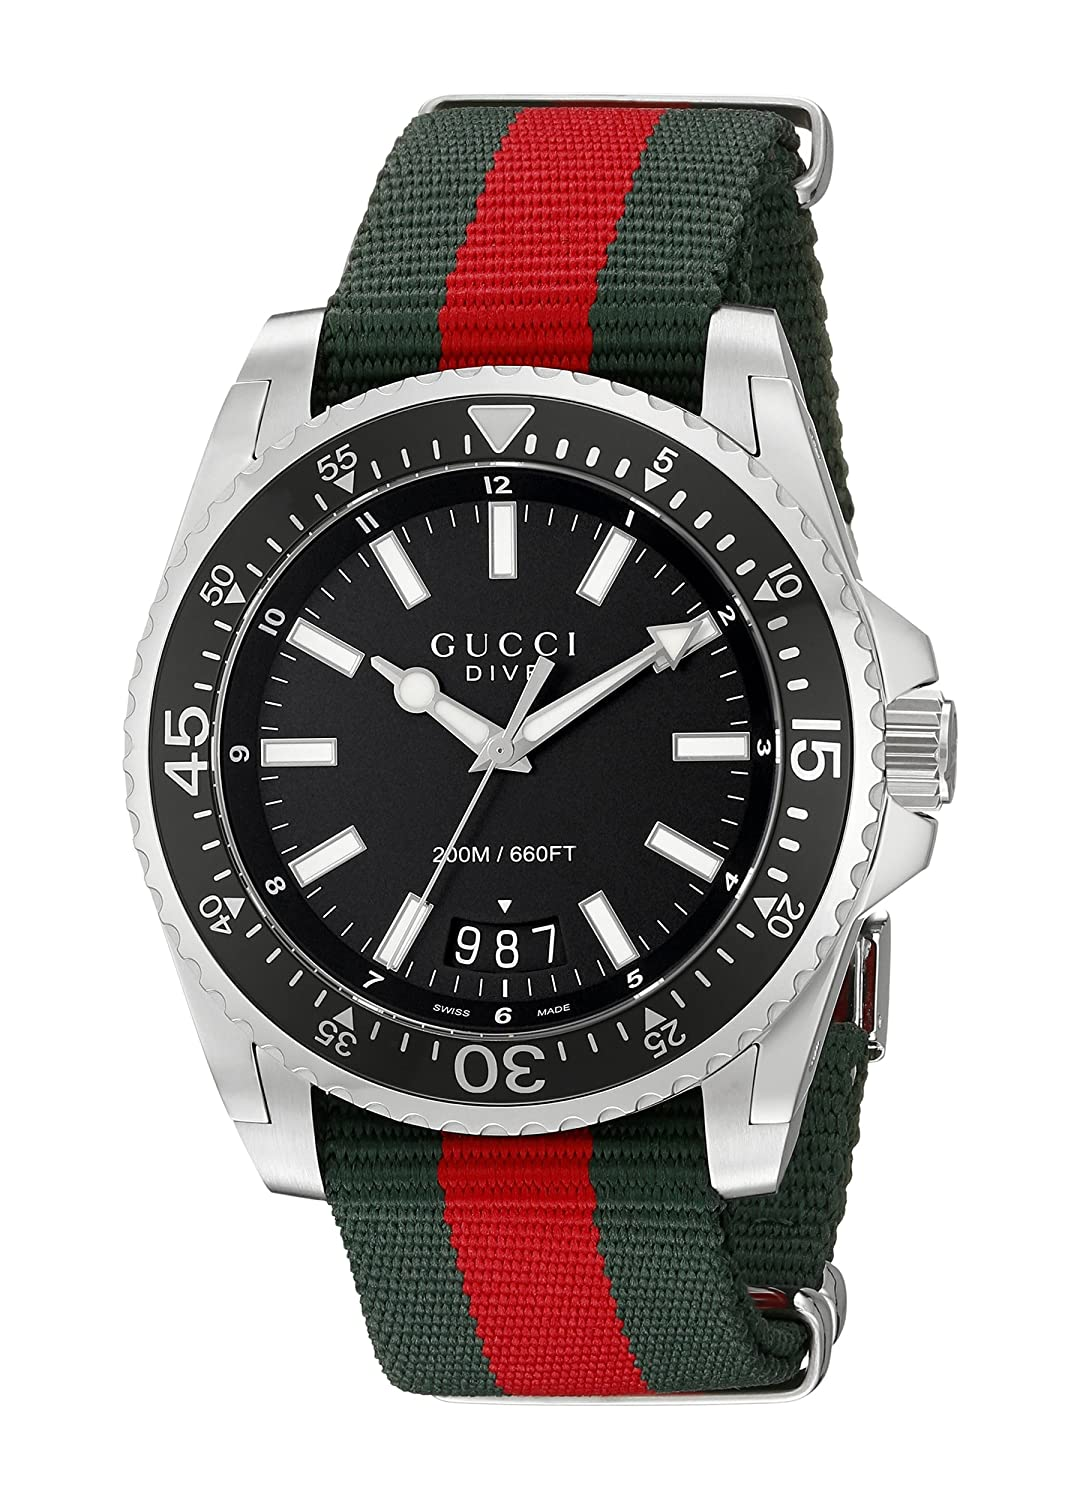 fad4d8de7be Amazon.com  Gucci Dive Stainless Steel with Striped Nylon Band Men s Watch(Model YA136206)   Watches